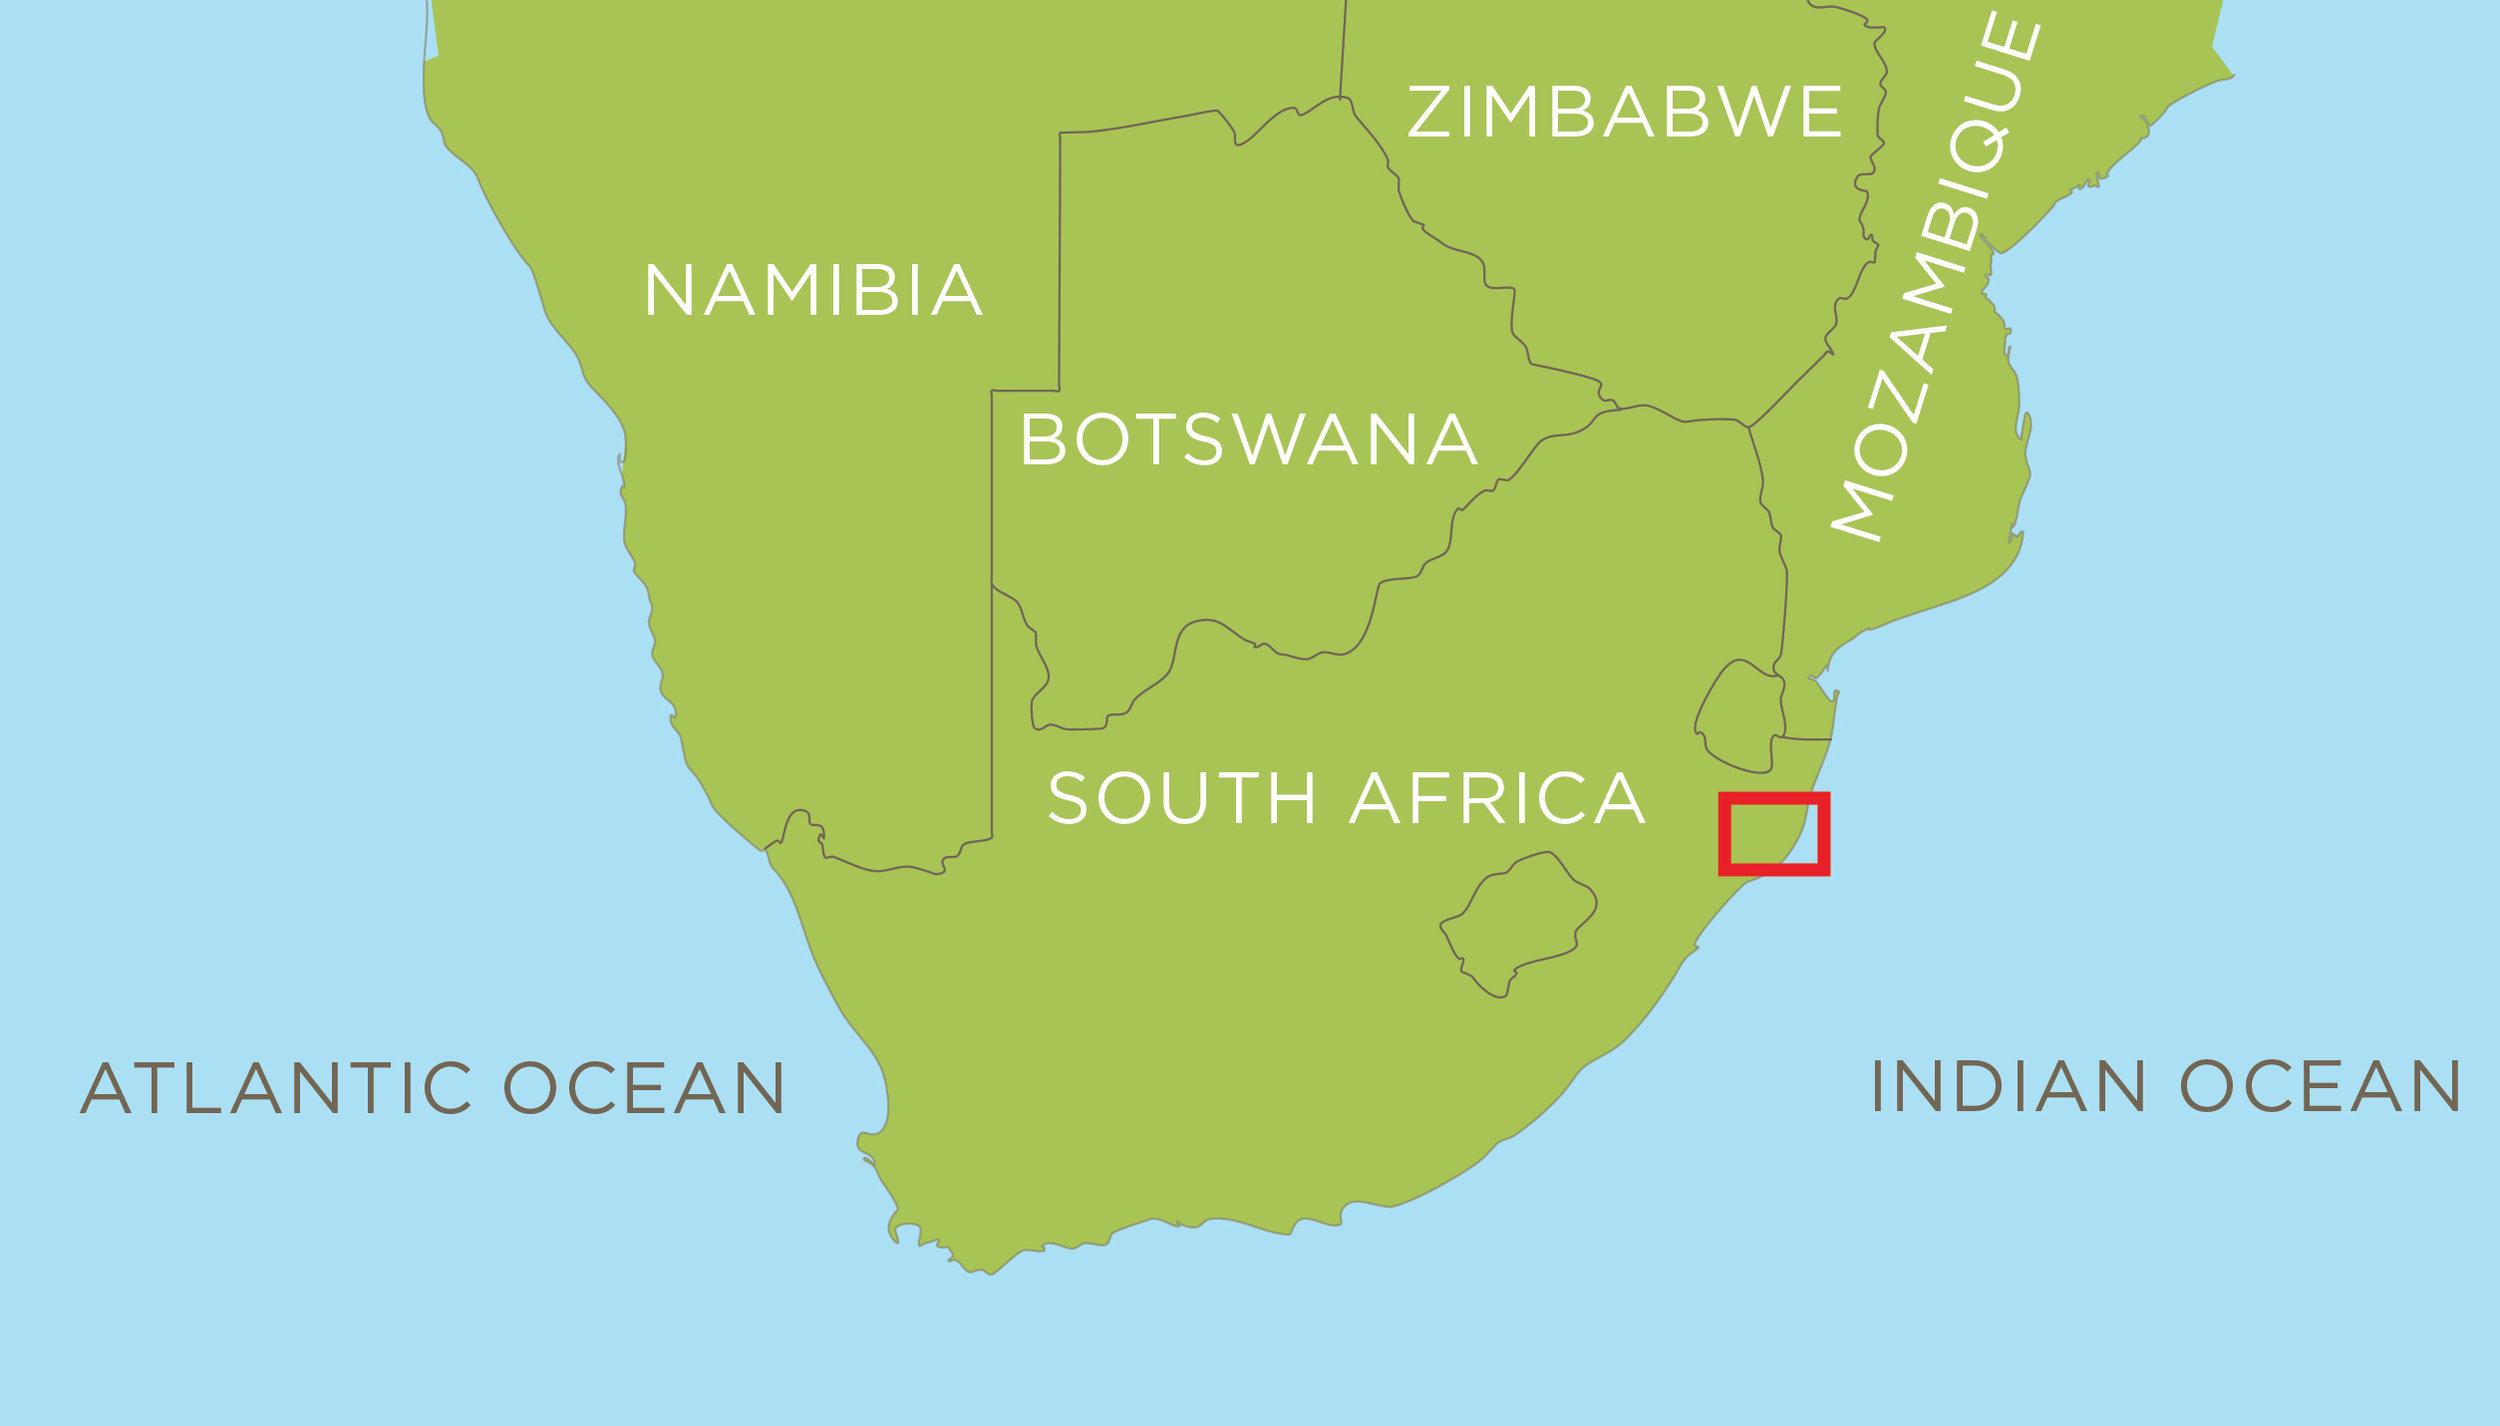 The Mfuleni Conservancy is located in the KwaZulu-Natal Province of South Africa, within the global biodiversity hotspot (the Maputaland-Pondoland-Albany hotspot).